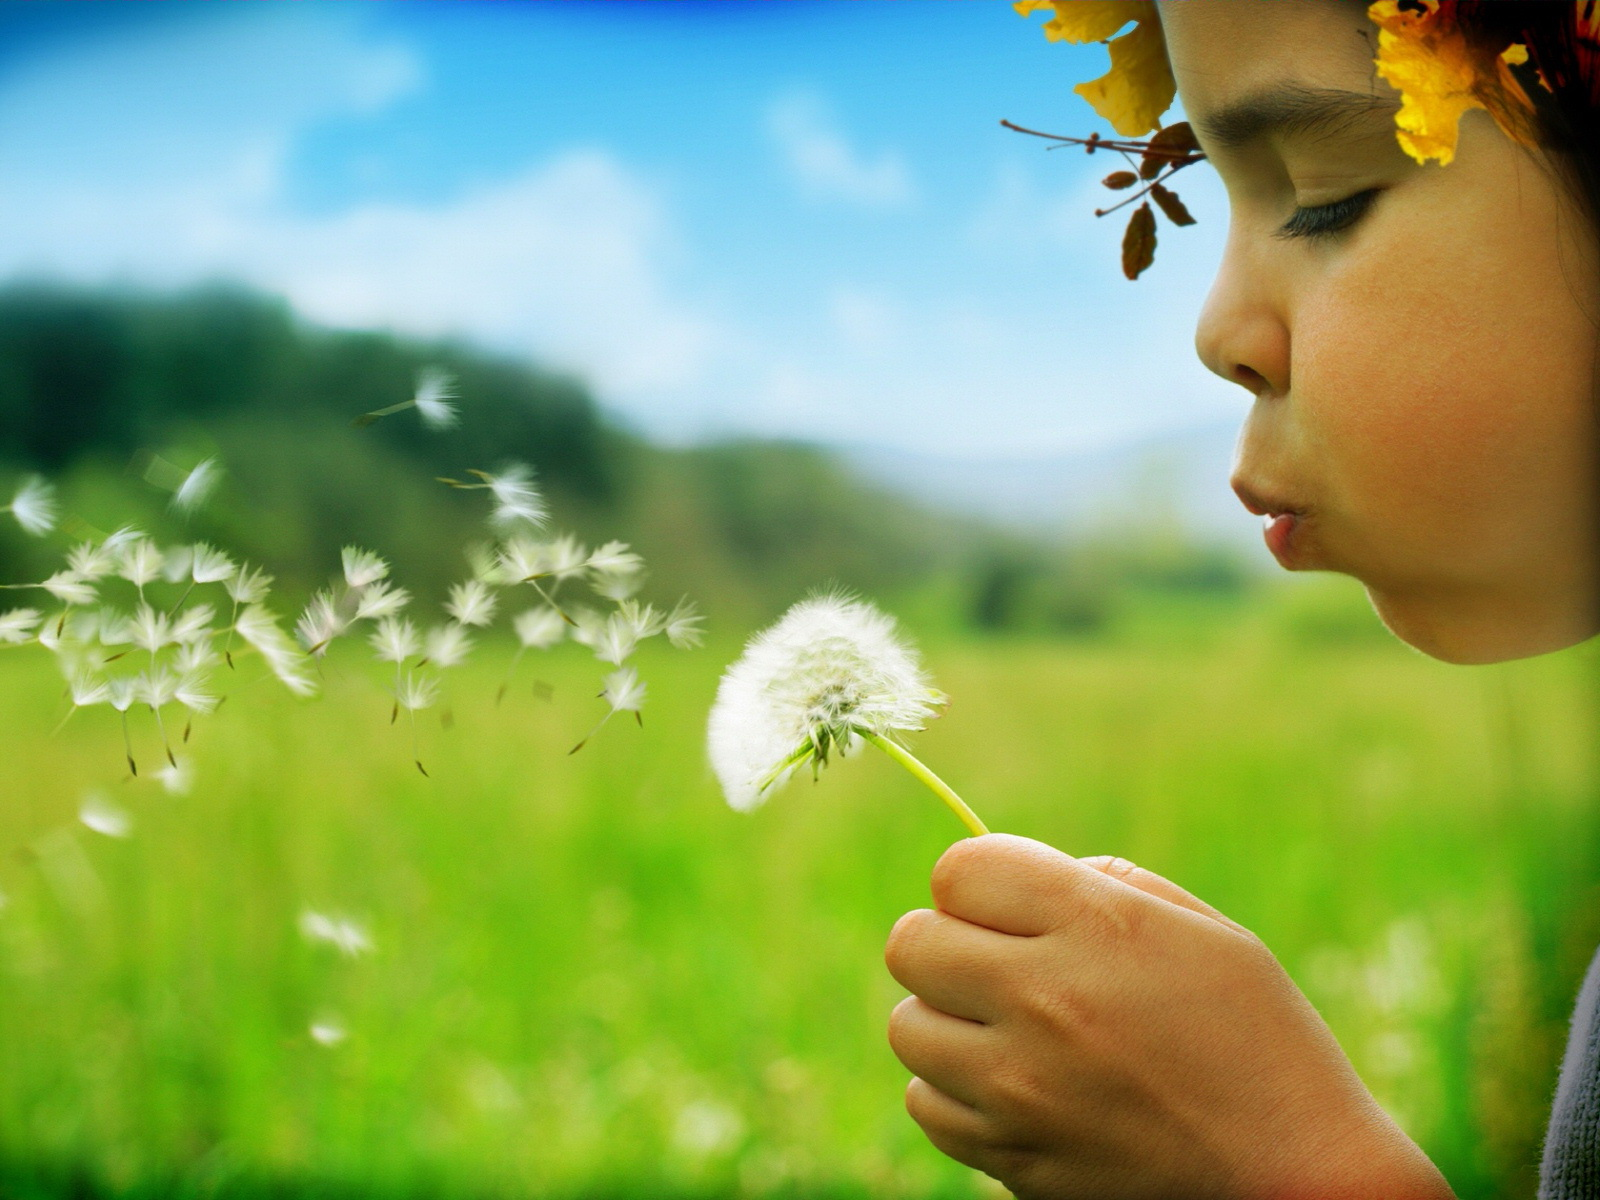 ... blowing dandelion in the meadow - Kids Wallpapers - Hi-Wallpapers.com